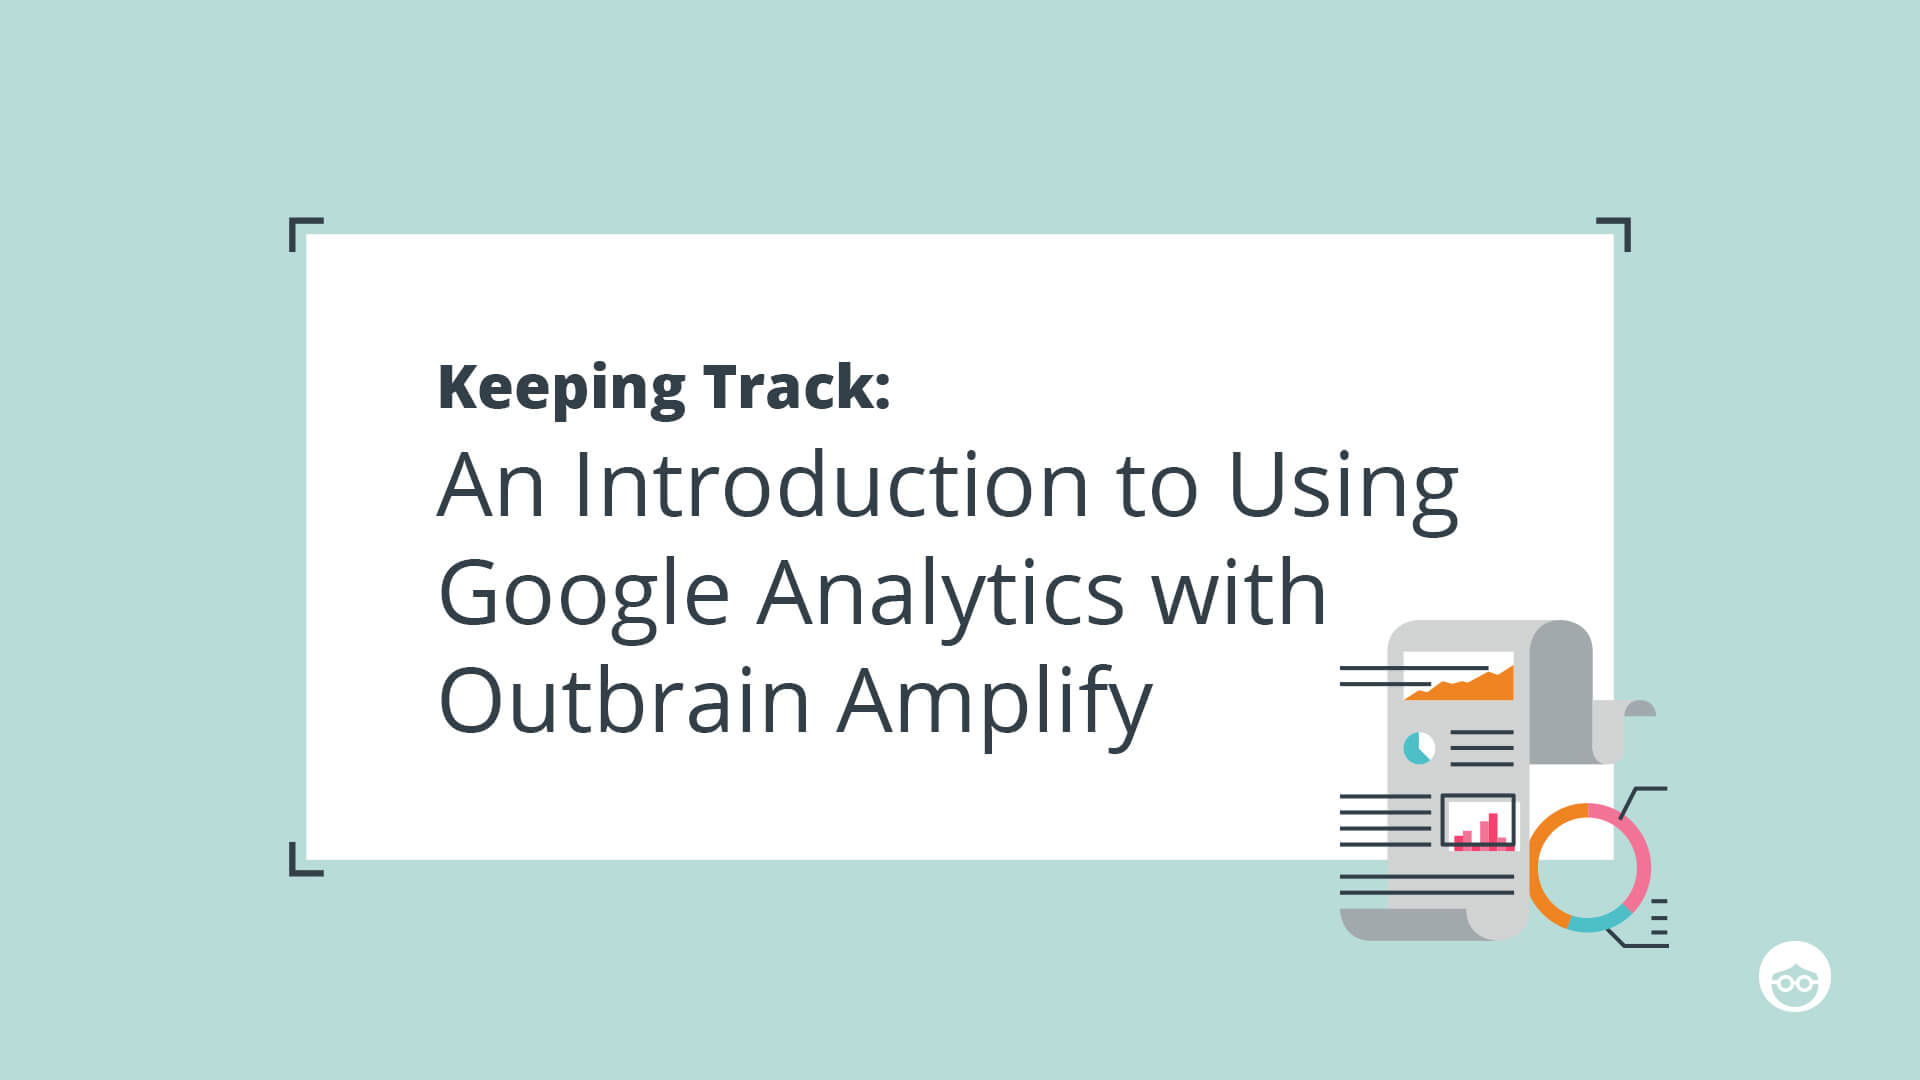 Google Analytics for Outbrain Amplify